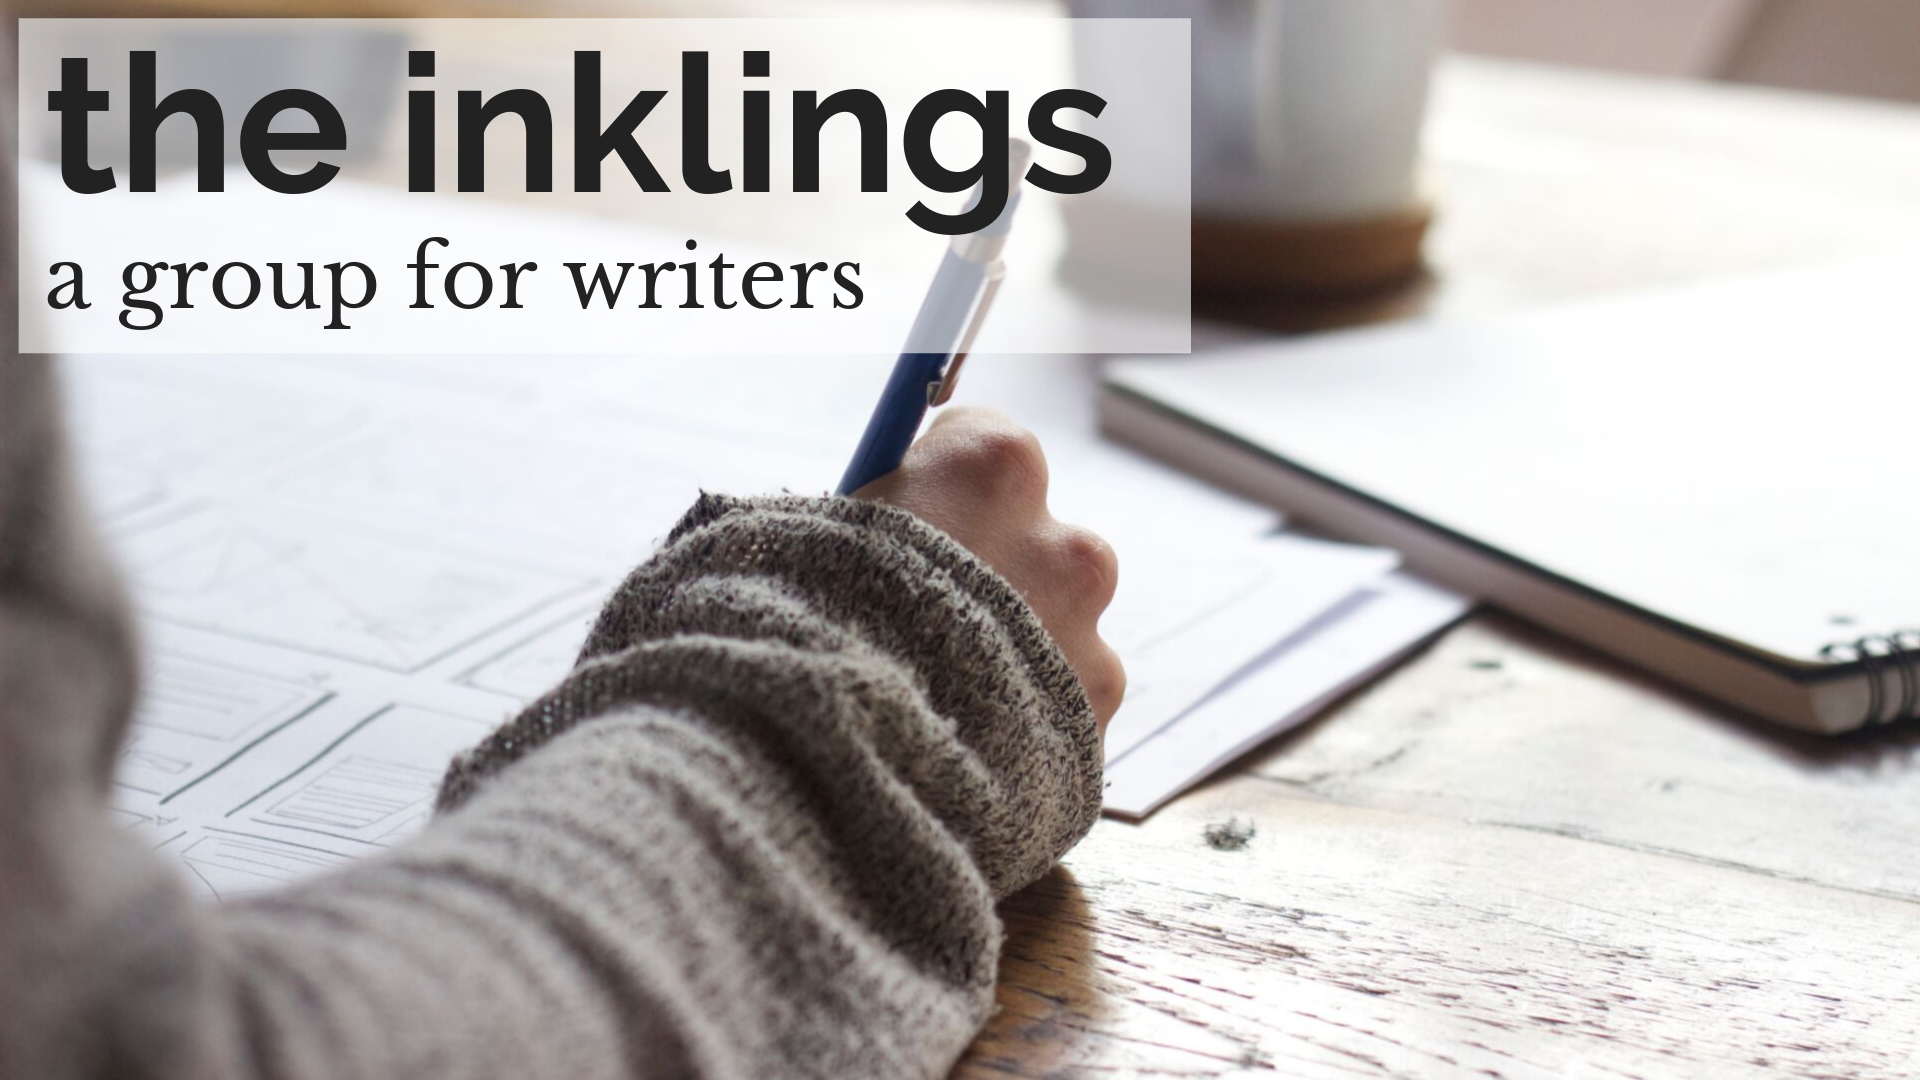 the inklings: a group for writers